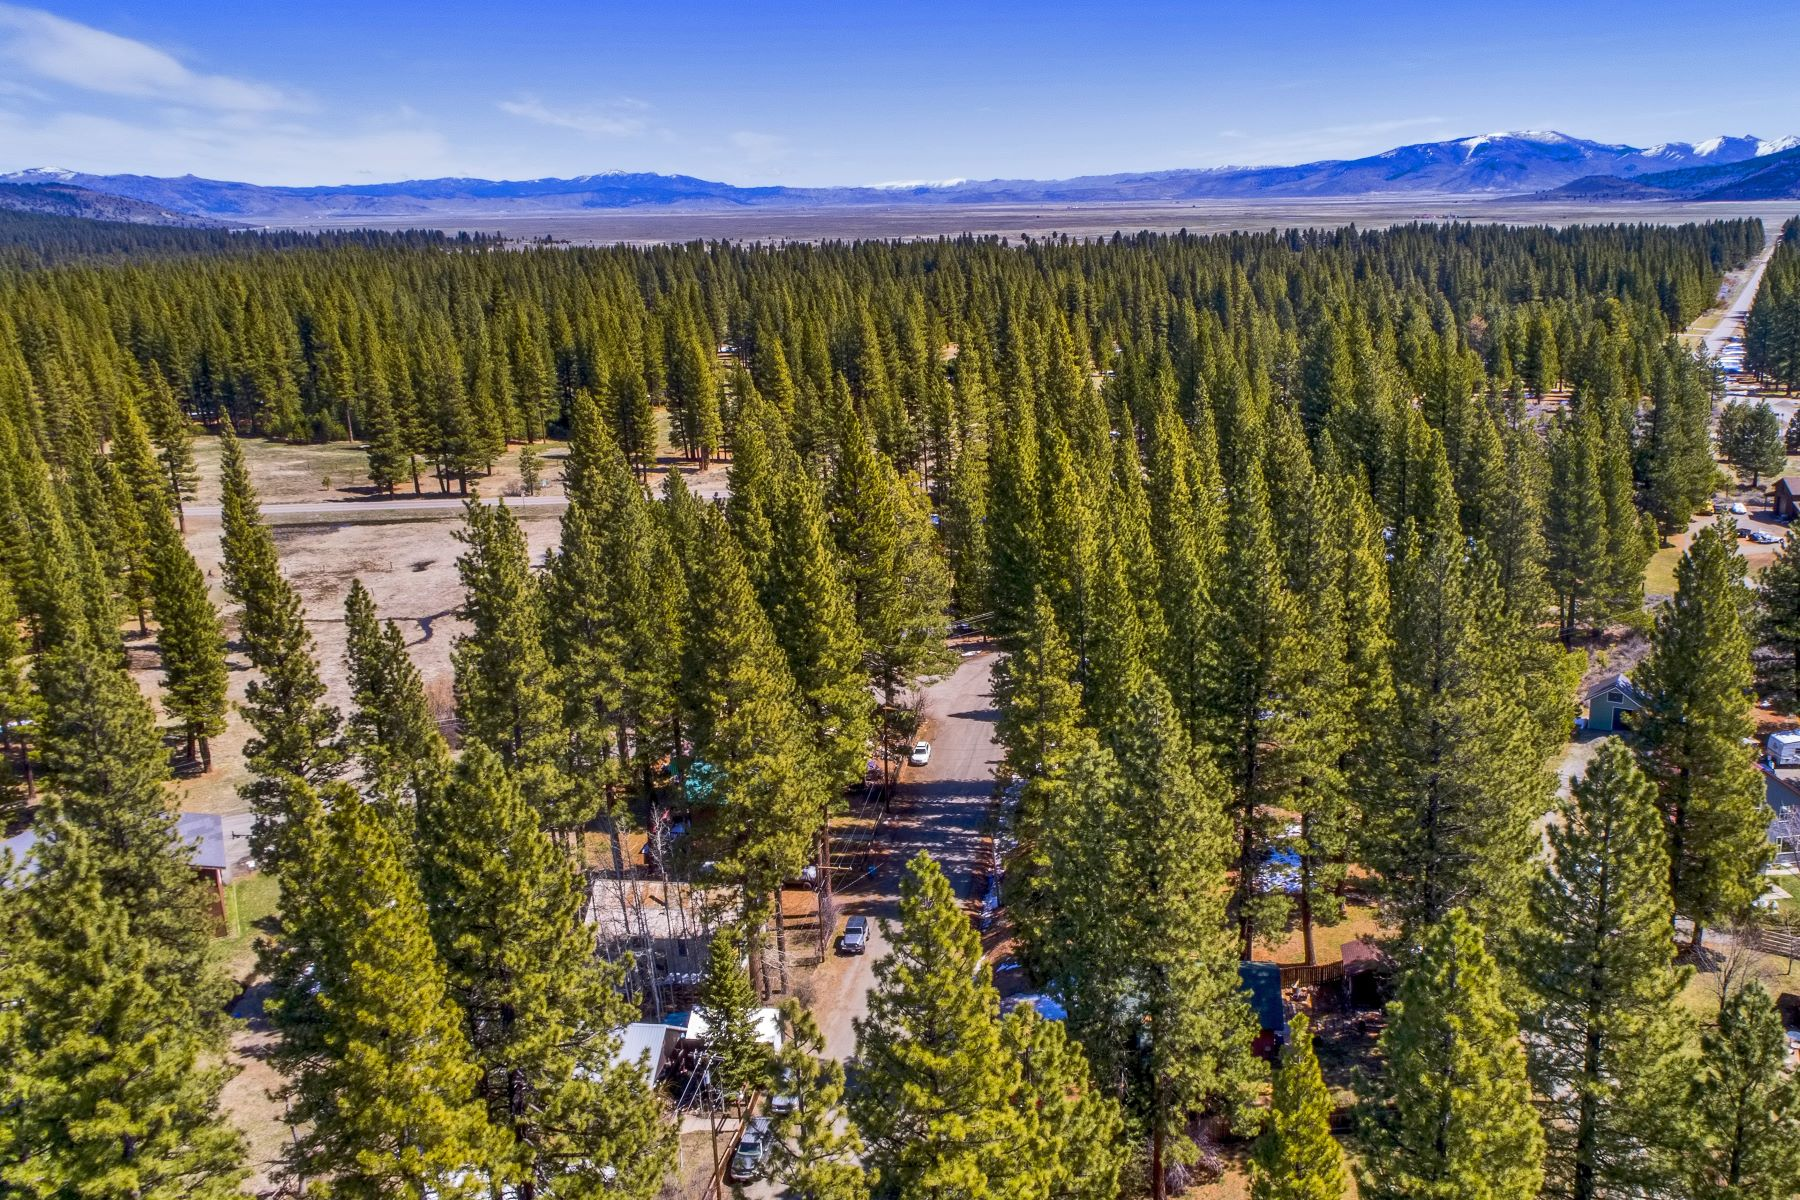 Land for Sale at Affordable lot in Calpine 117 Calpine Avenue Calpine, California 96124 United States